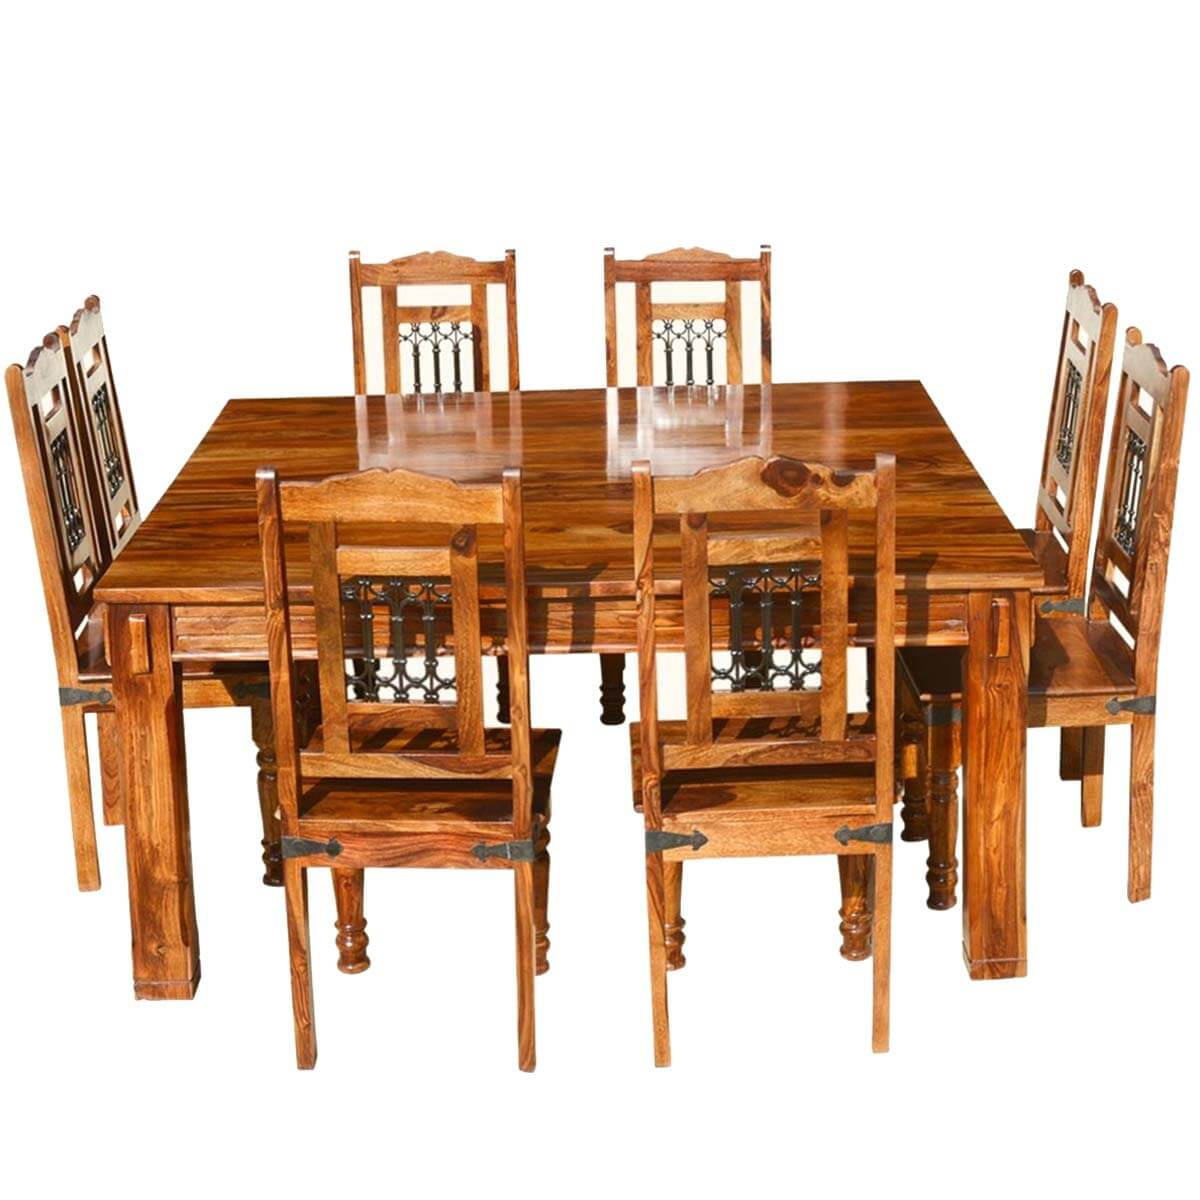 p transitional solid wood rustic square dining table chairs set